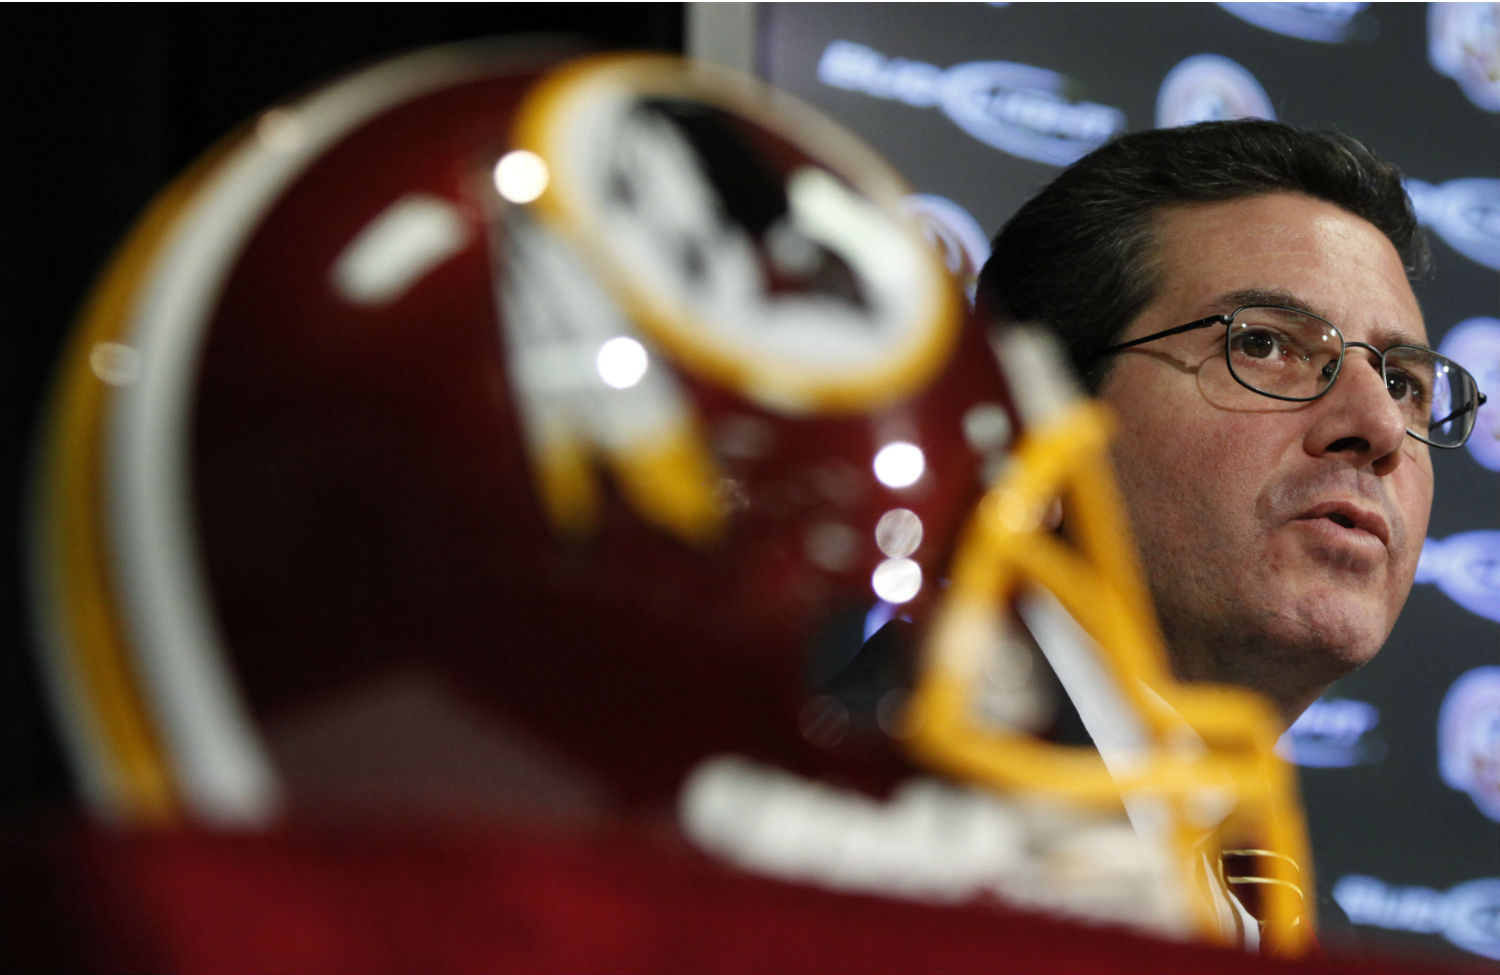 Washington-Redskins-owner-Dan-Snyder.-AP-PhotoManuel-Balce-Ceneta